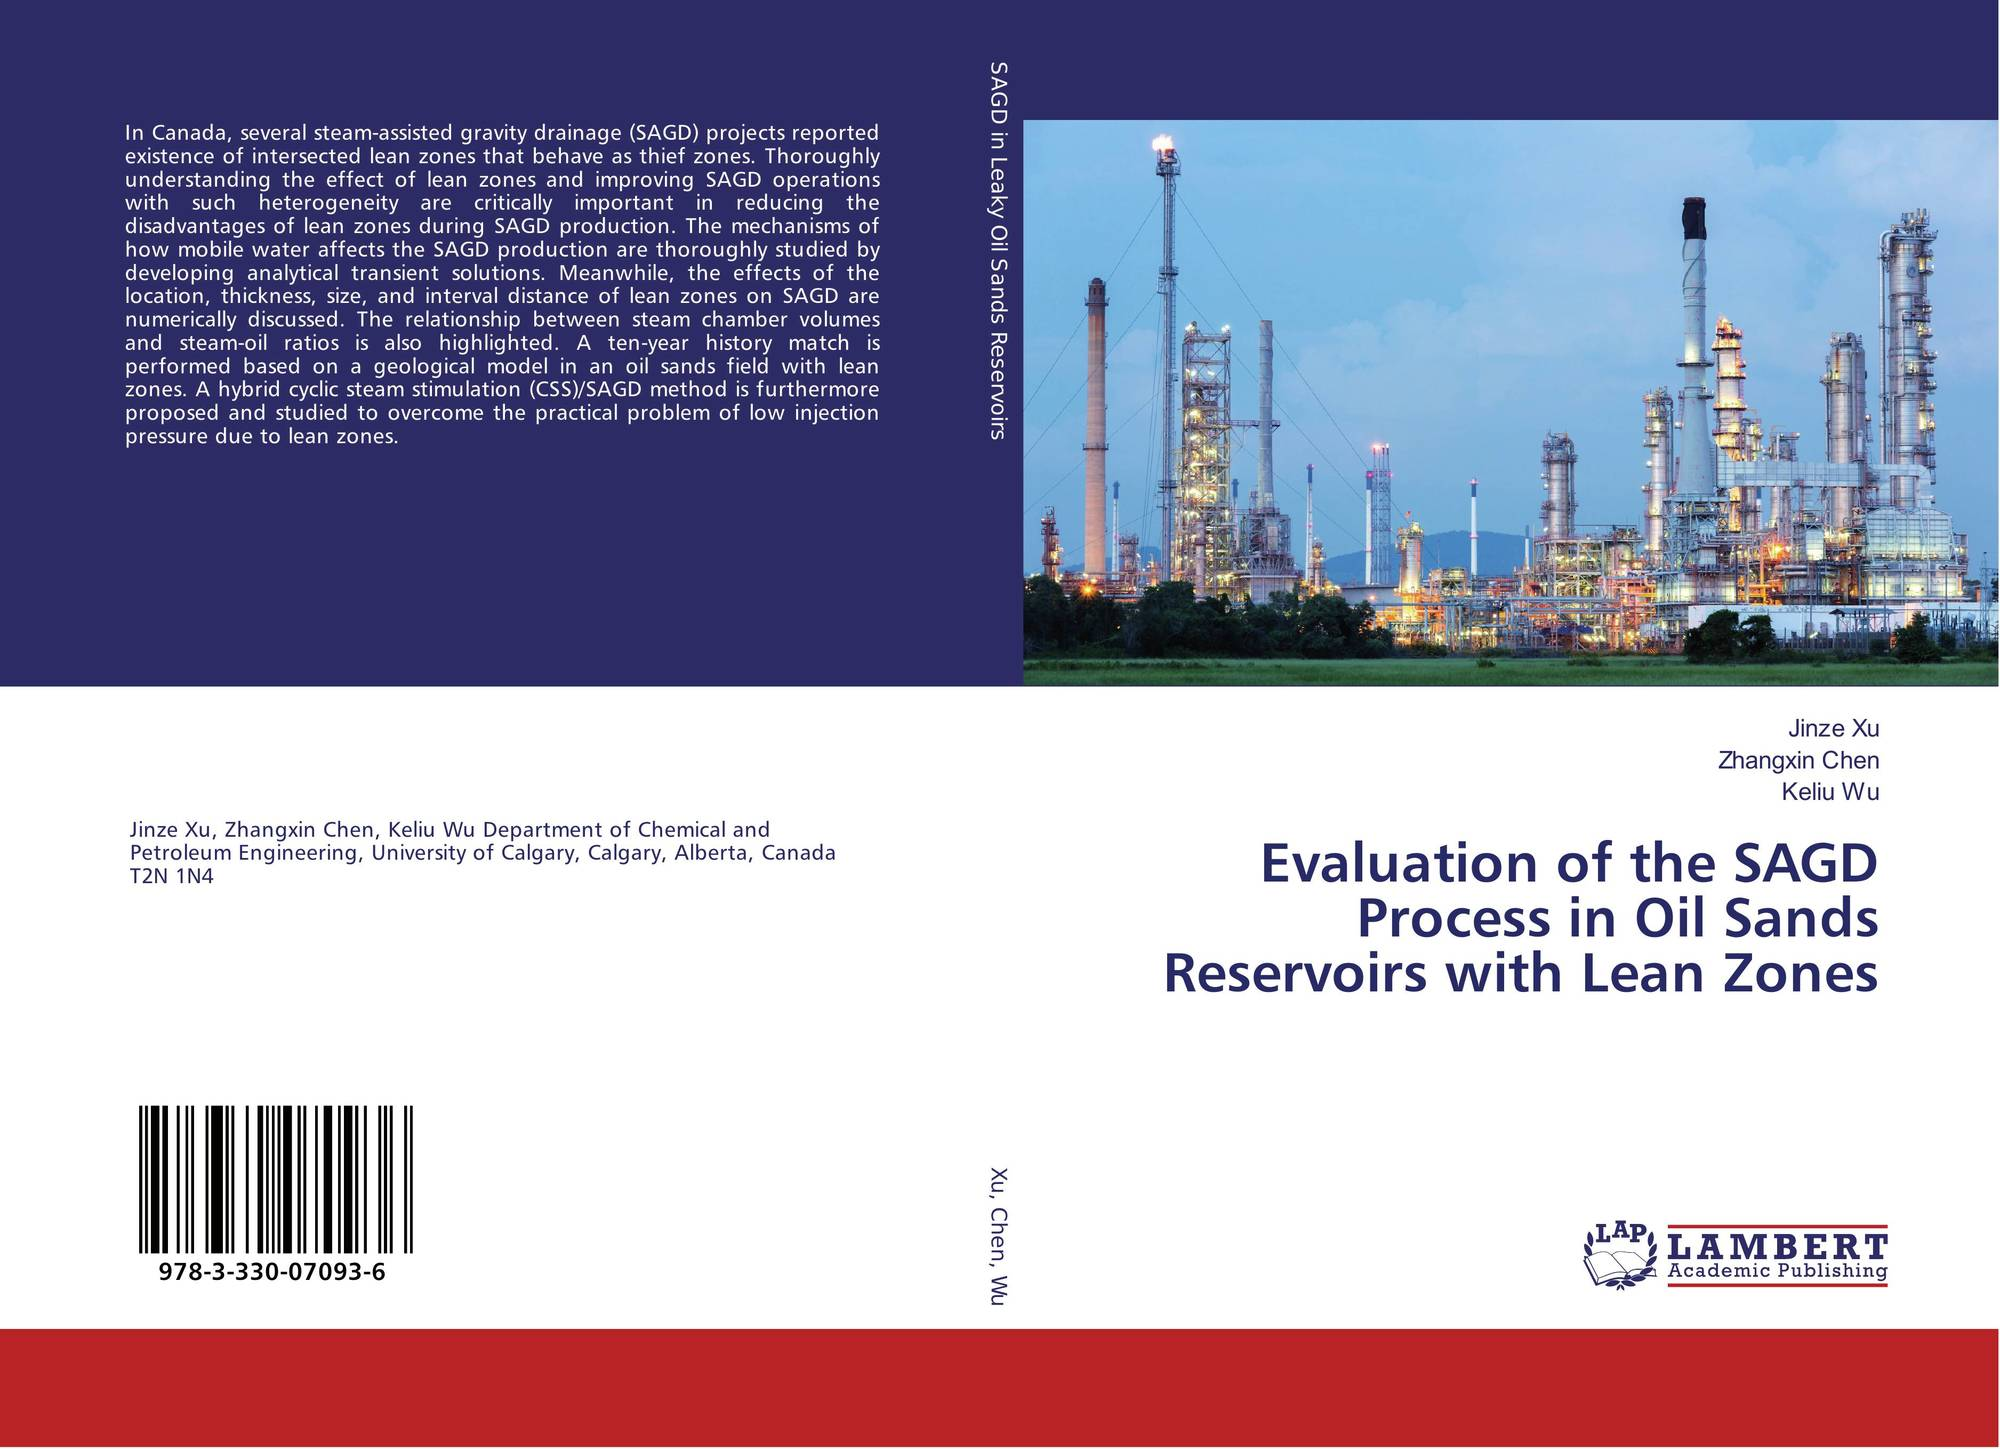 Evaluation of the SAGD Process in Oil Sands Reservoirs with Lean